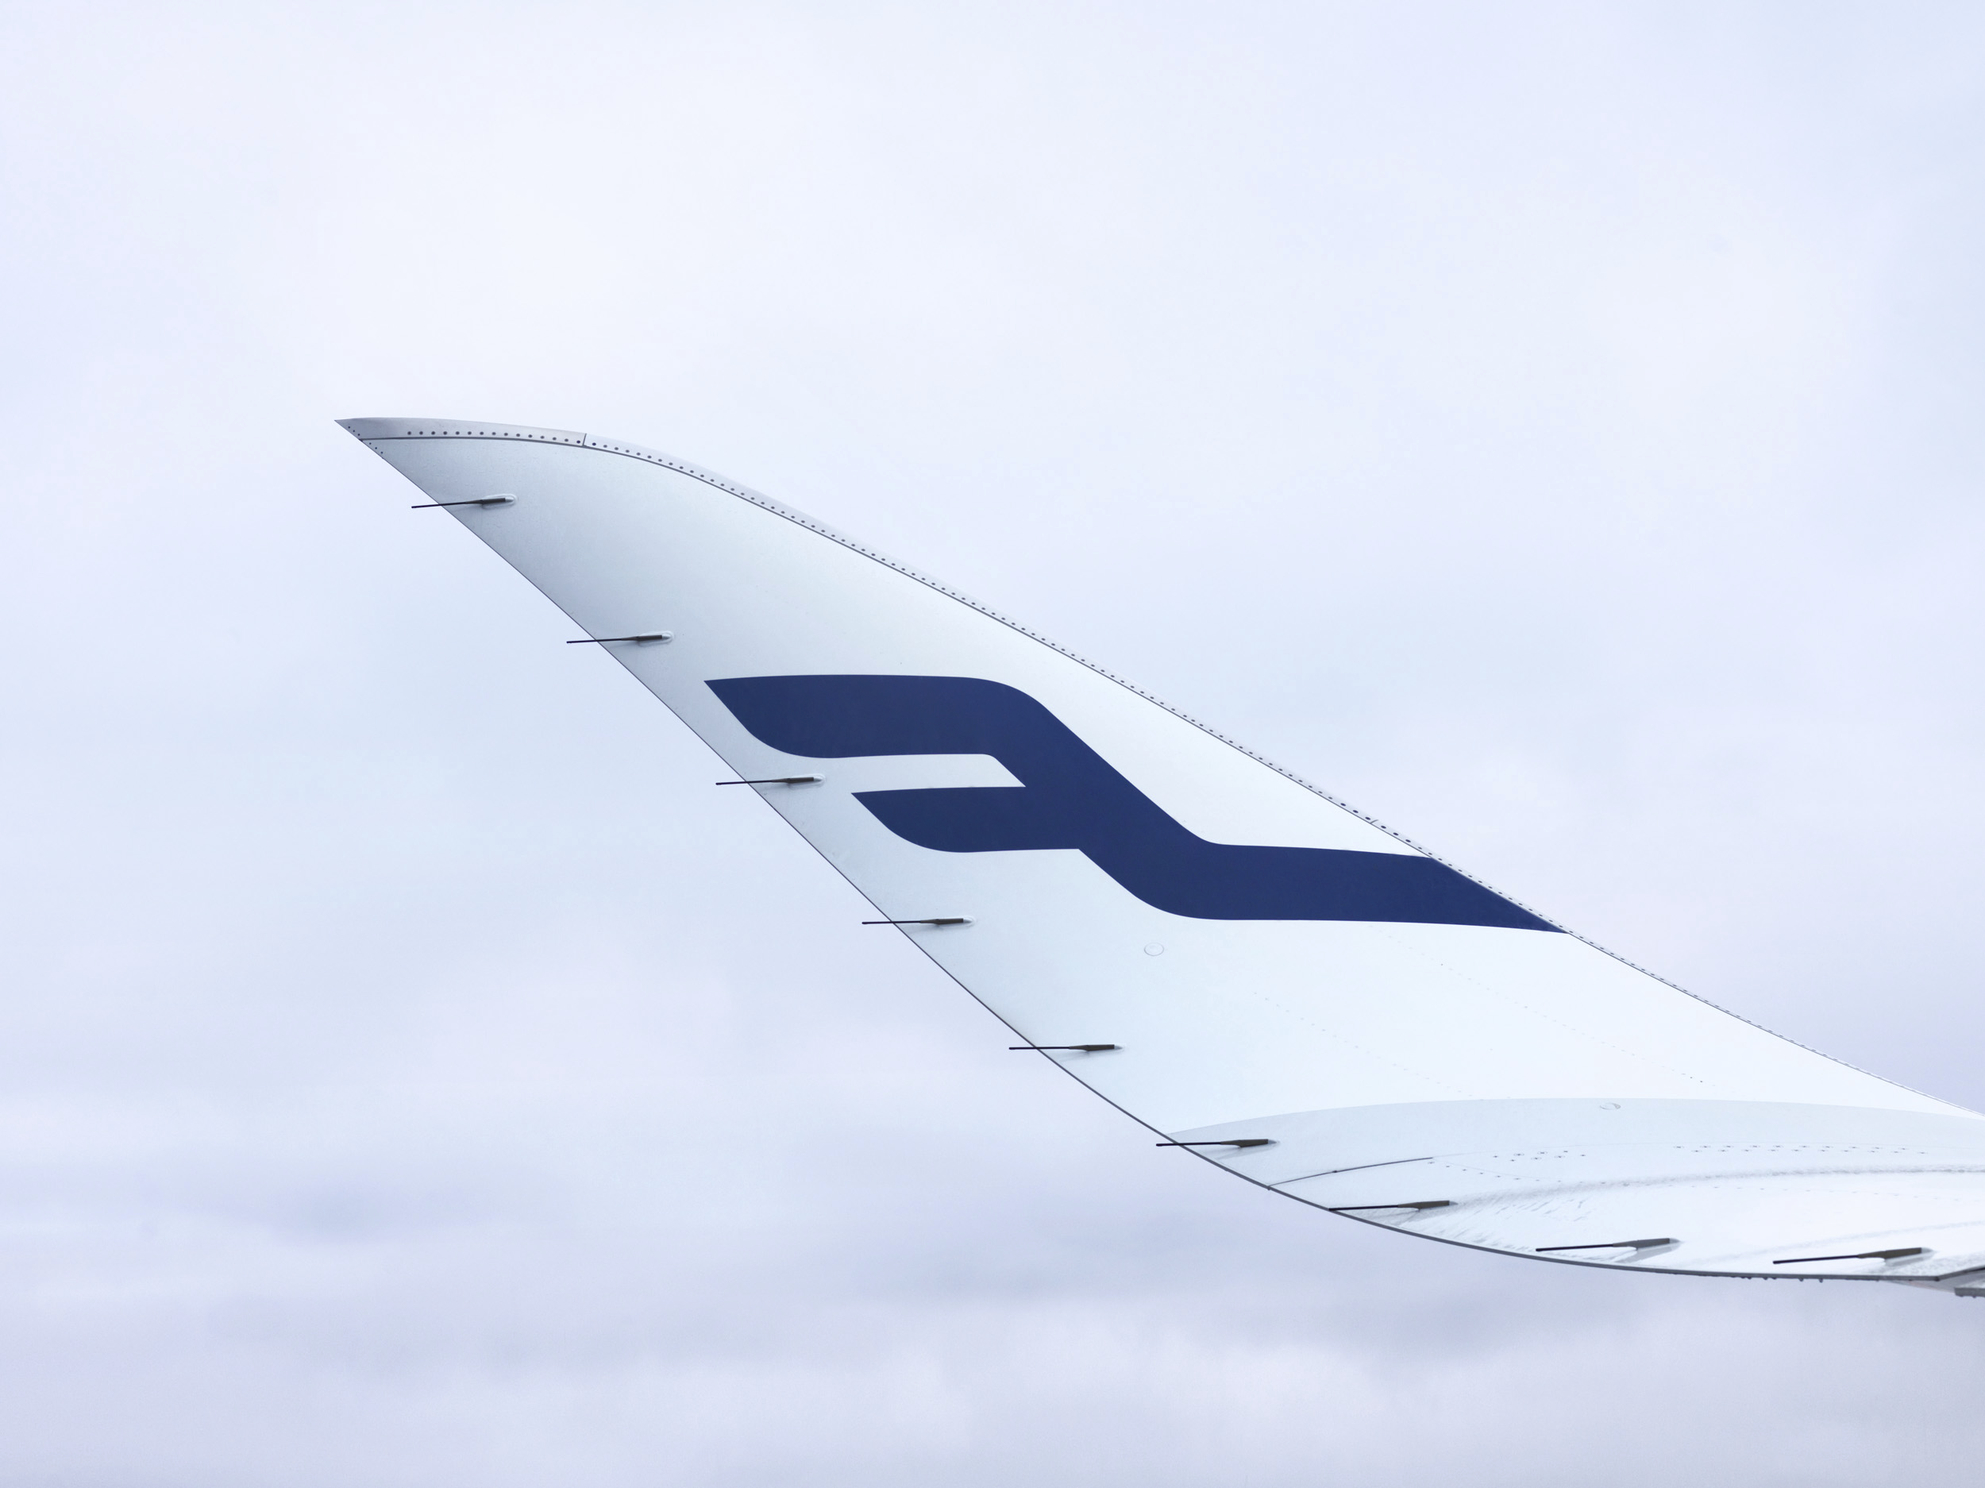 Finnair A350-900 winglet. (Foto: Finnair)